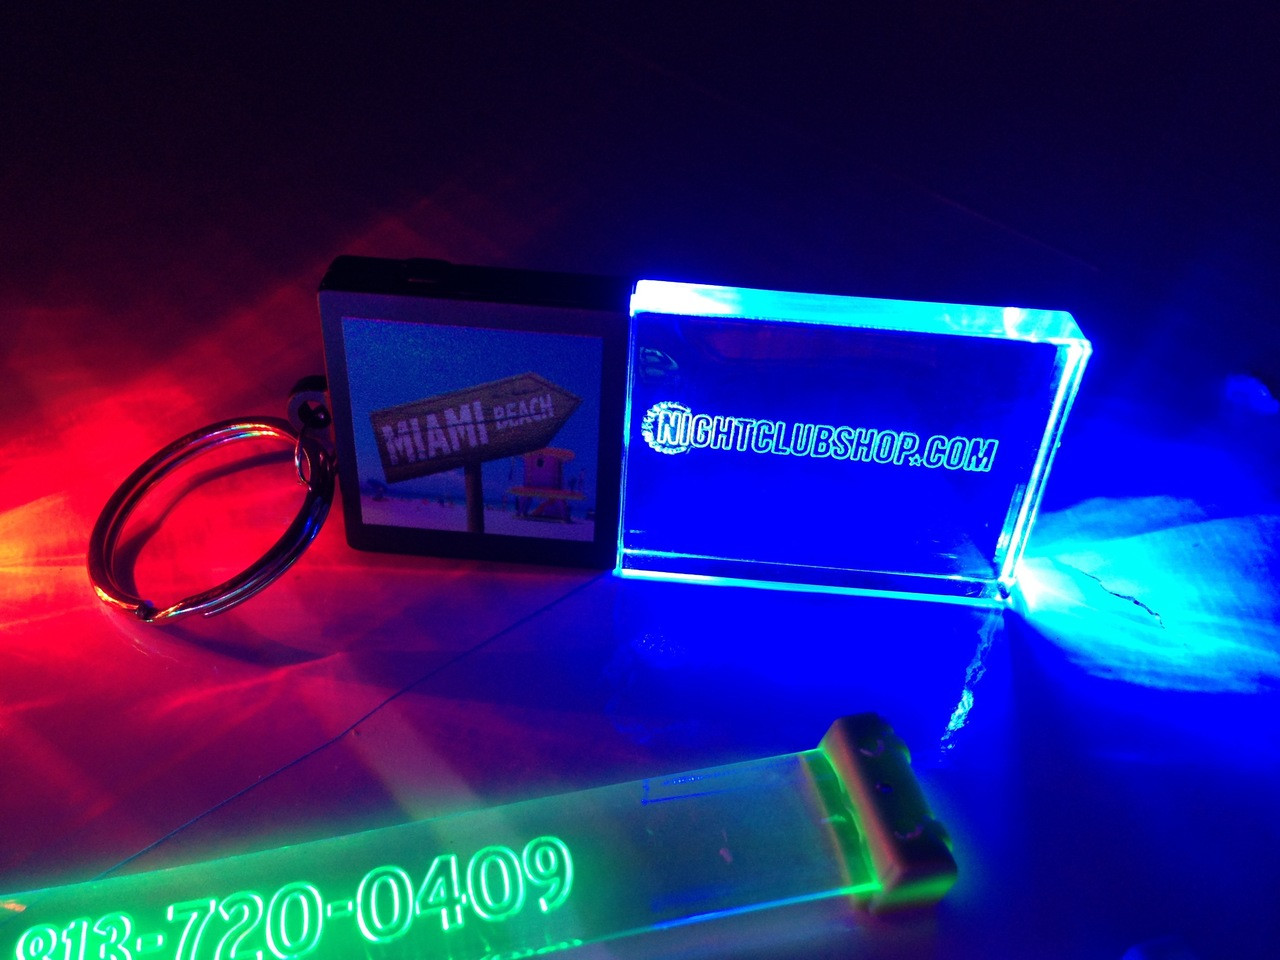 Nightclubshop,LED,Keychain,Key,chain,LED keychain, custom, BEAM, dual, print,engraved, logo,text, laser engraved,personalized,promo,merch,fundraiser,nightclub,fund raiser